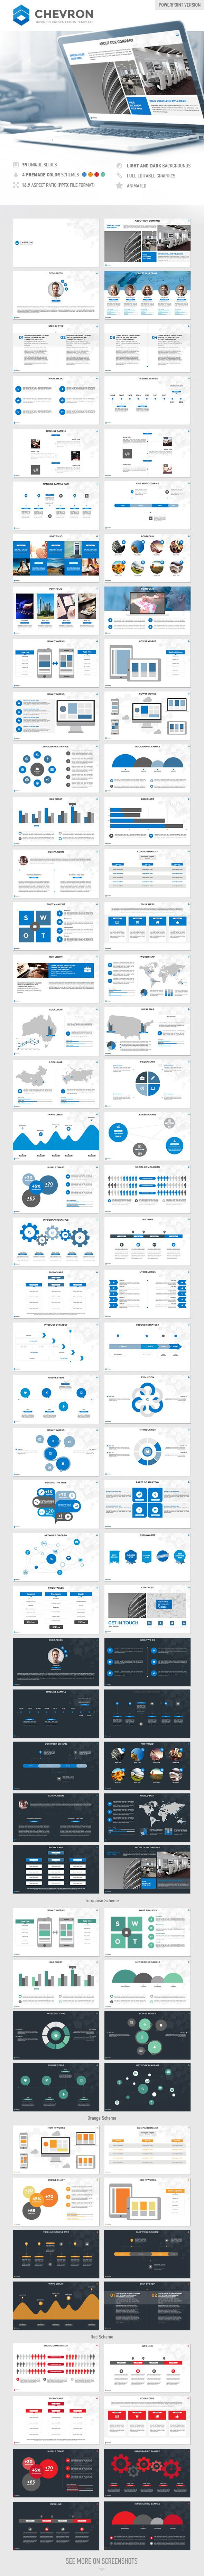 Chevron PowerPoint Presentation Template - Powerpoint Templates Presentation Templates